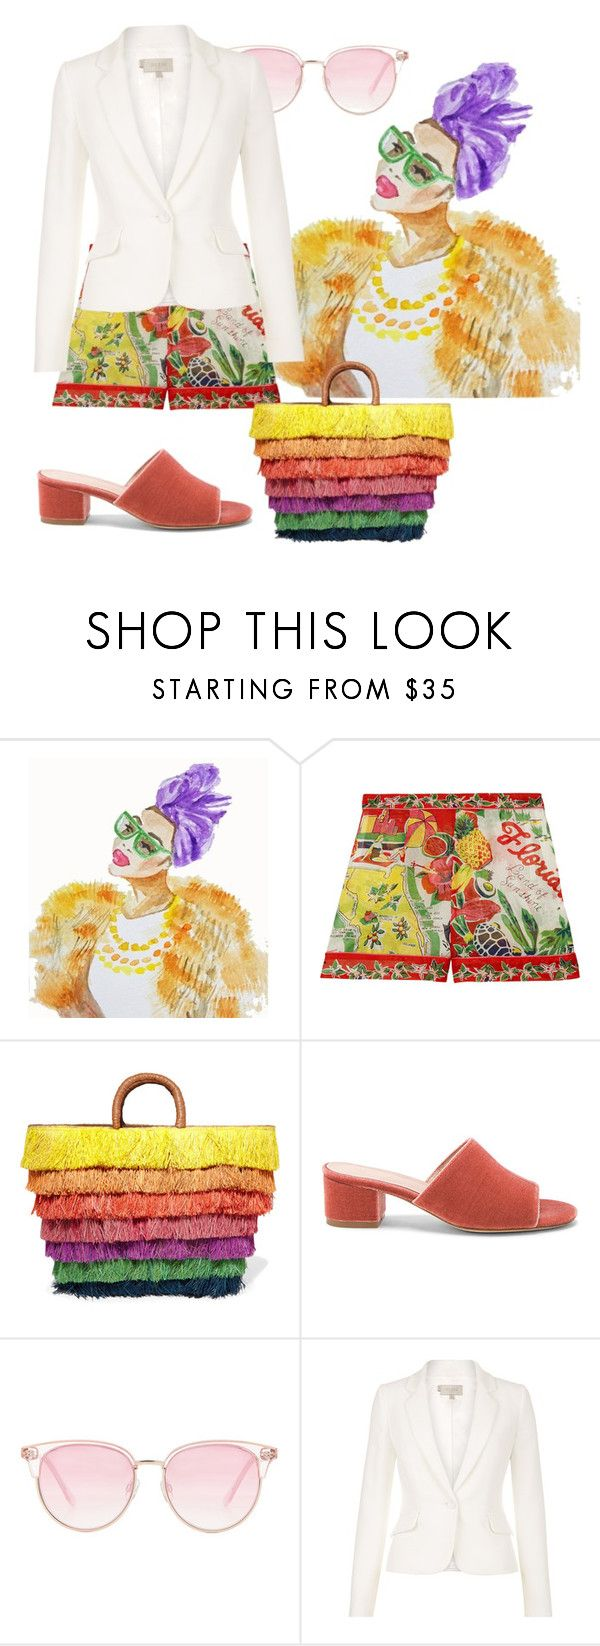 """""""Summer wonders"""" by sofiacalo ❤ liked on Polyvore featuring Anna Sui, Kayu, Raye, Le Specs and Hobbs"""